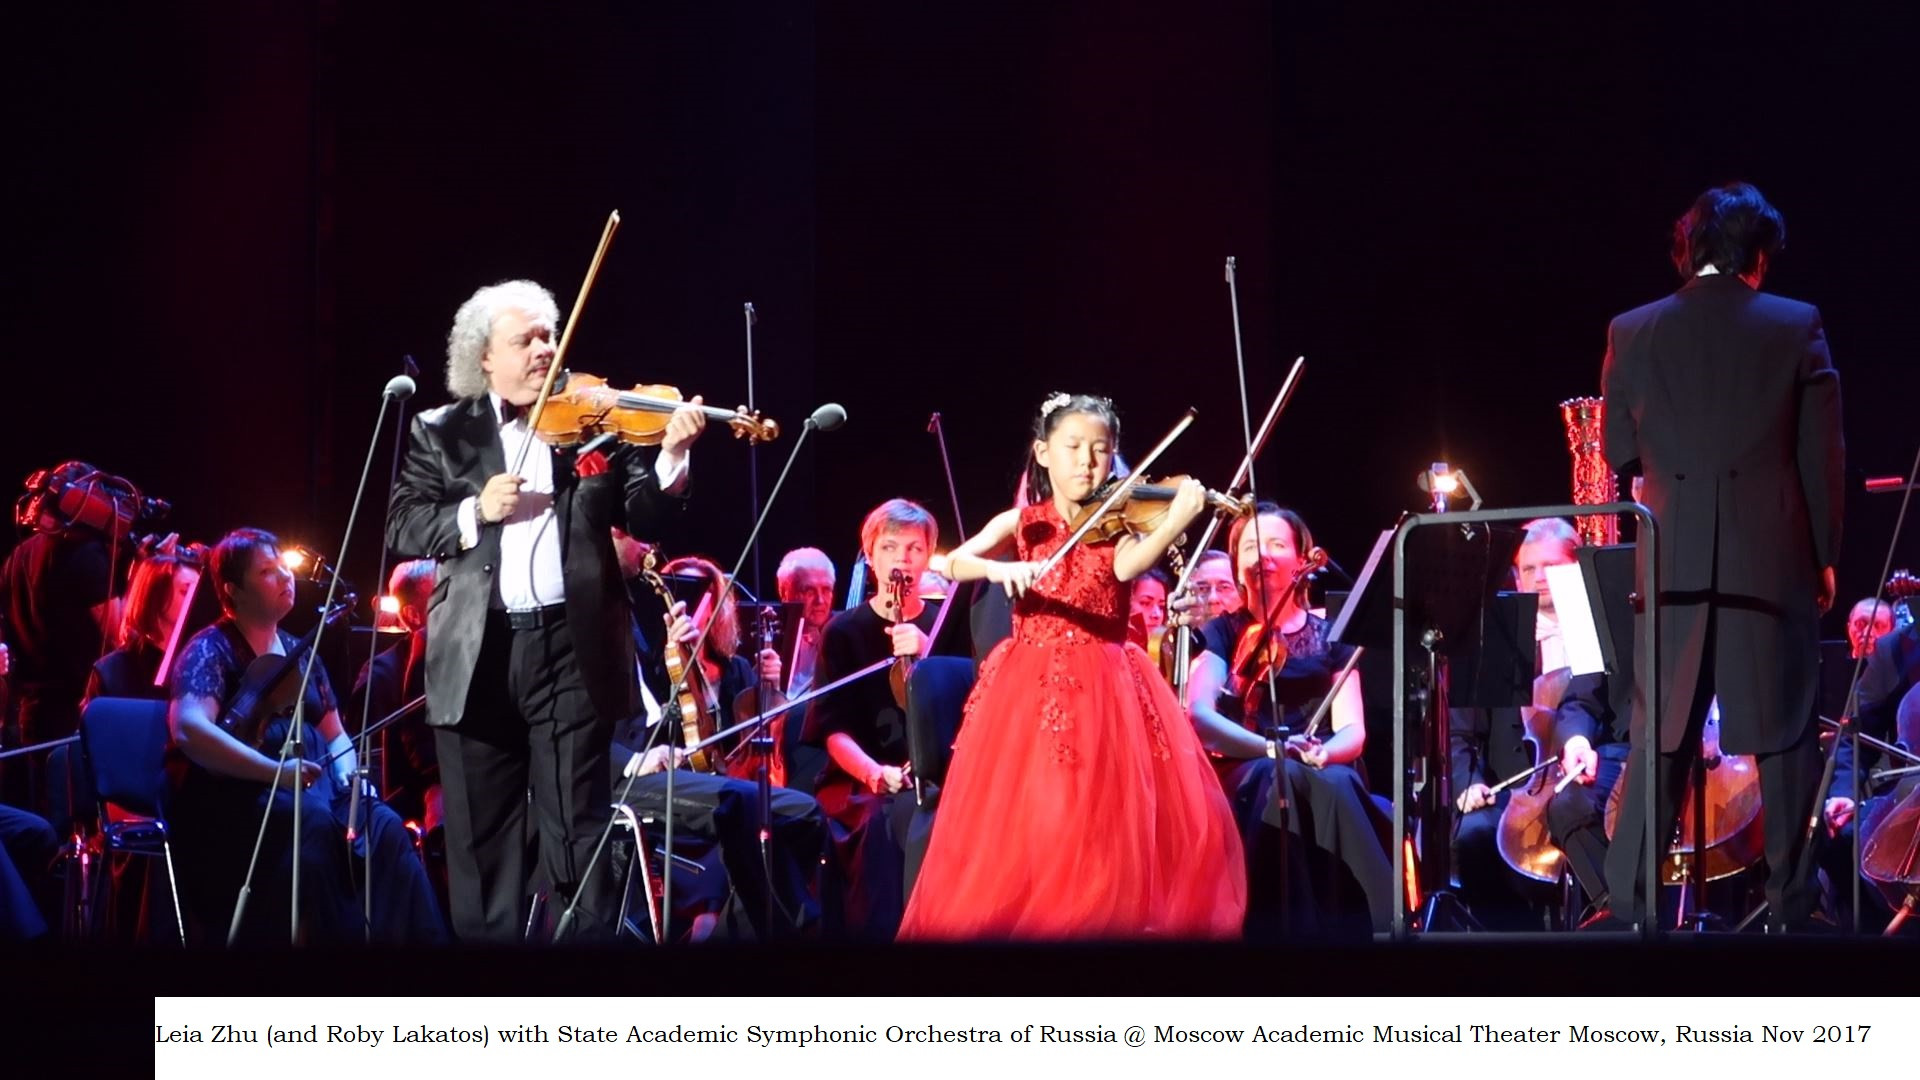 Leia Zhu with State Academic Symphonic Orchestra of Russia @ Moscow Academic Musical Theater Nov 2017